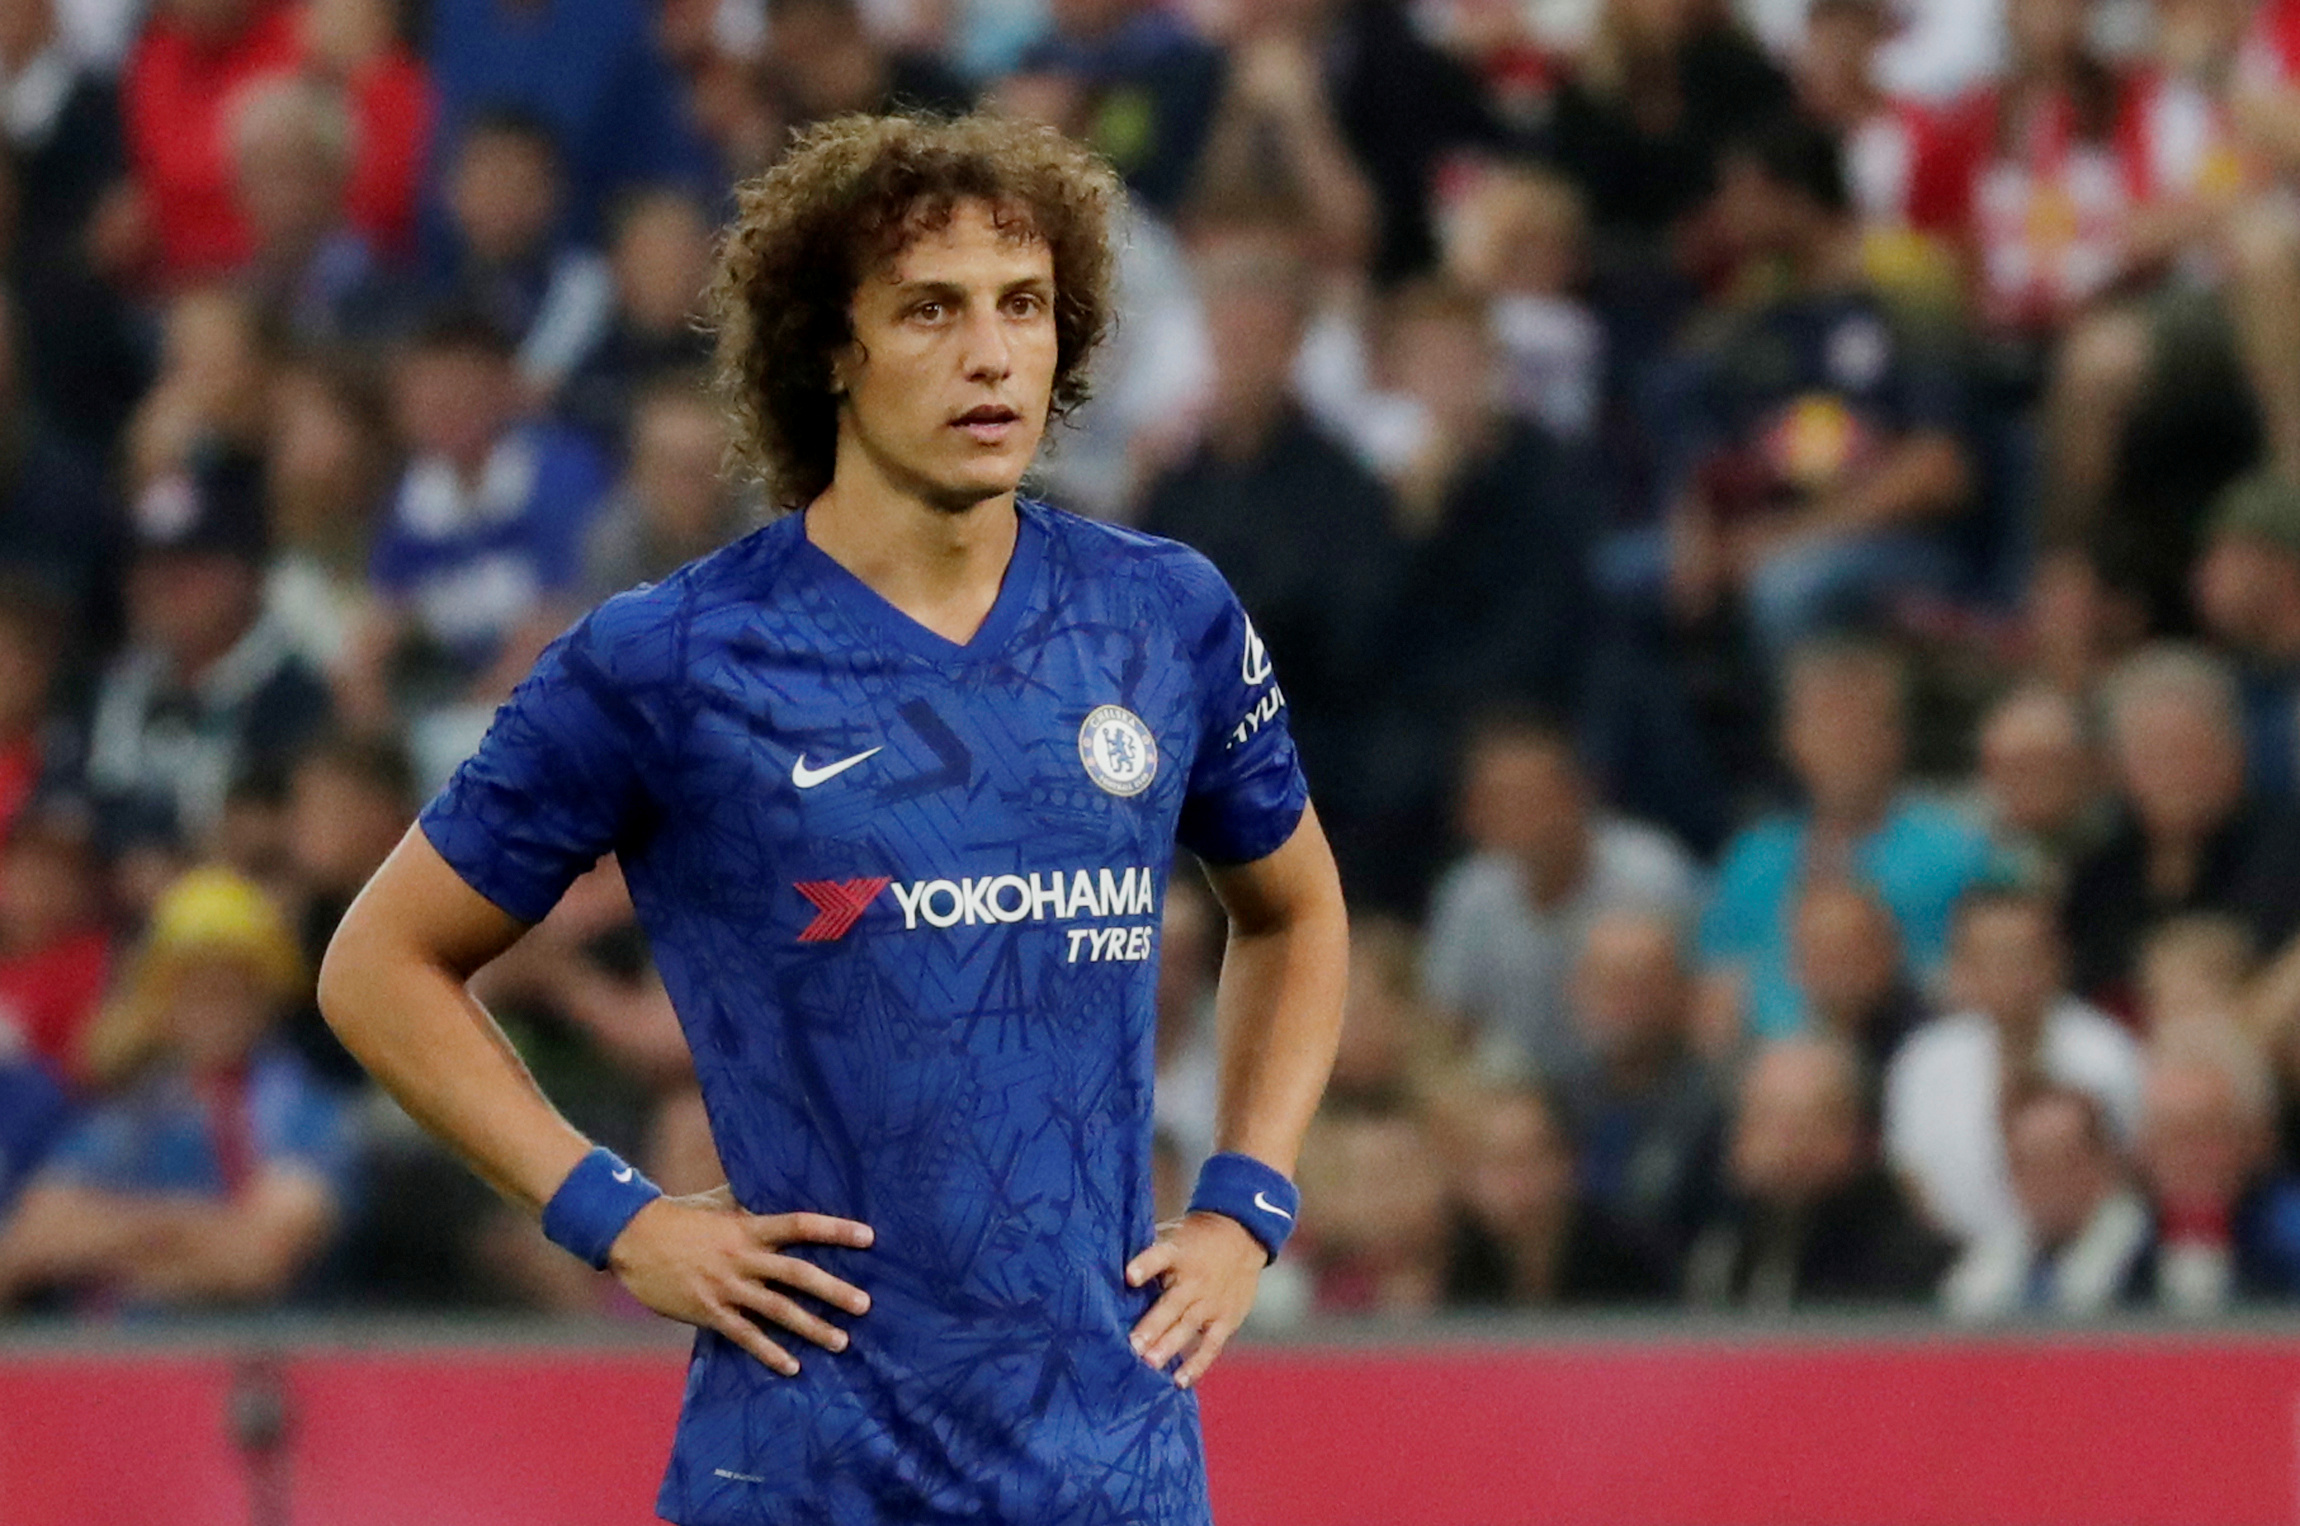 Christensen's tough dig at escapee Luiz